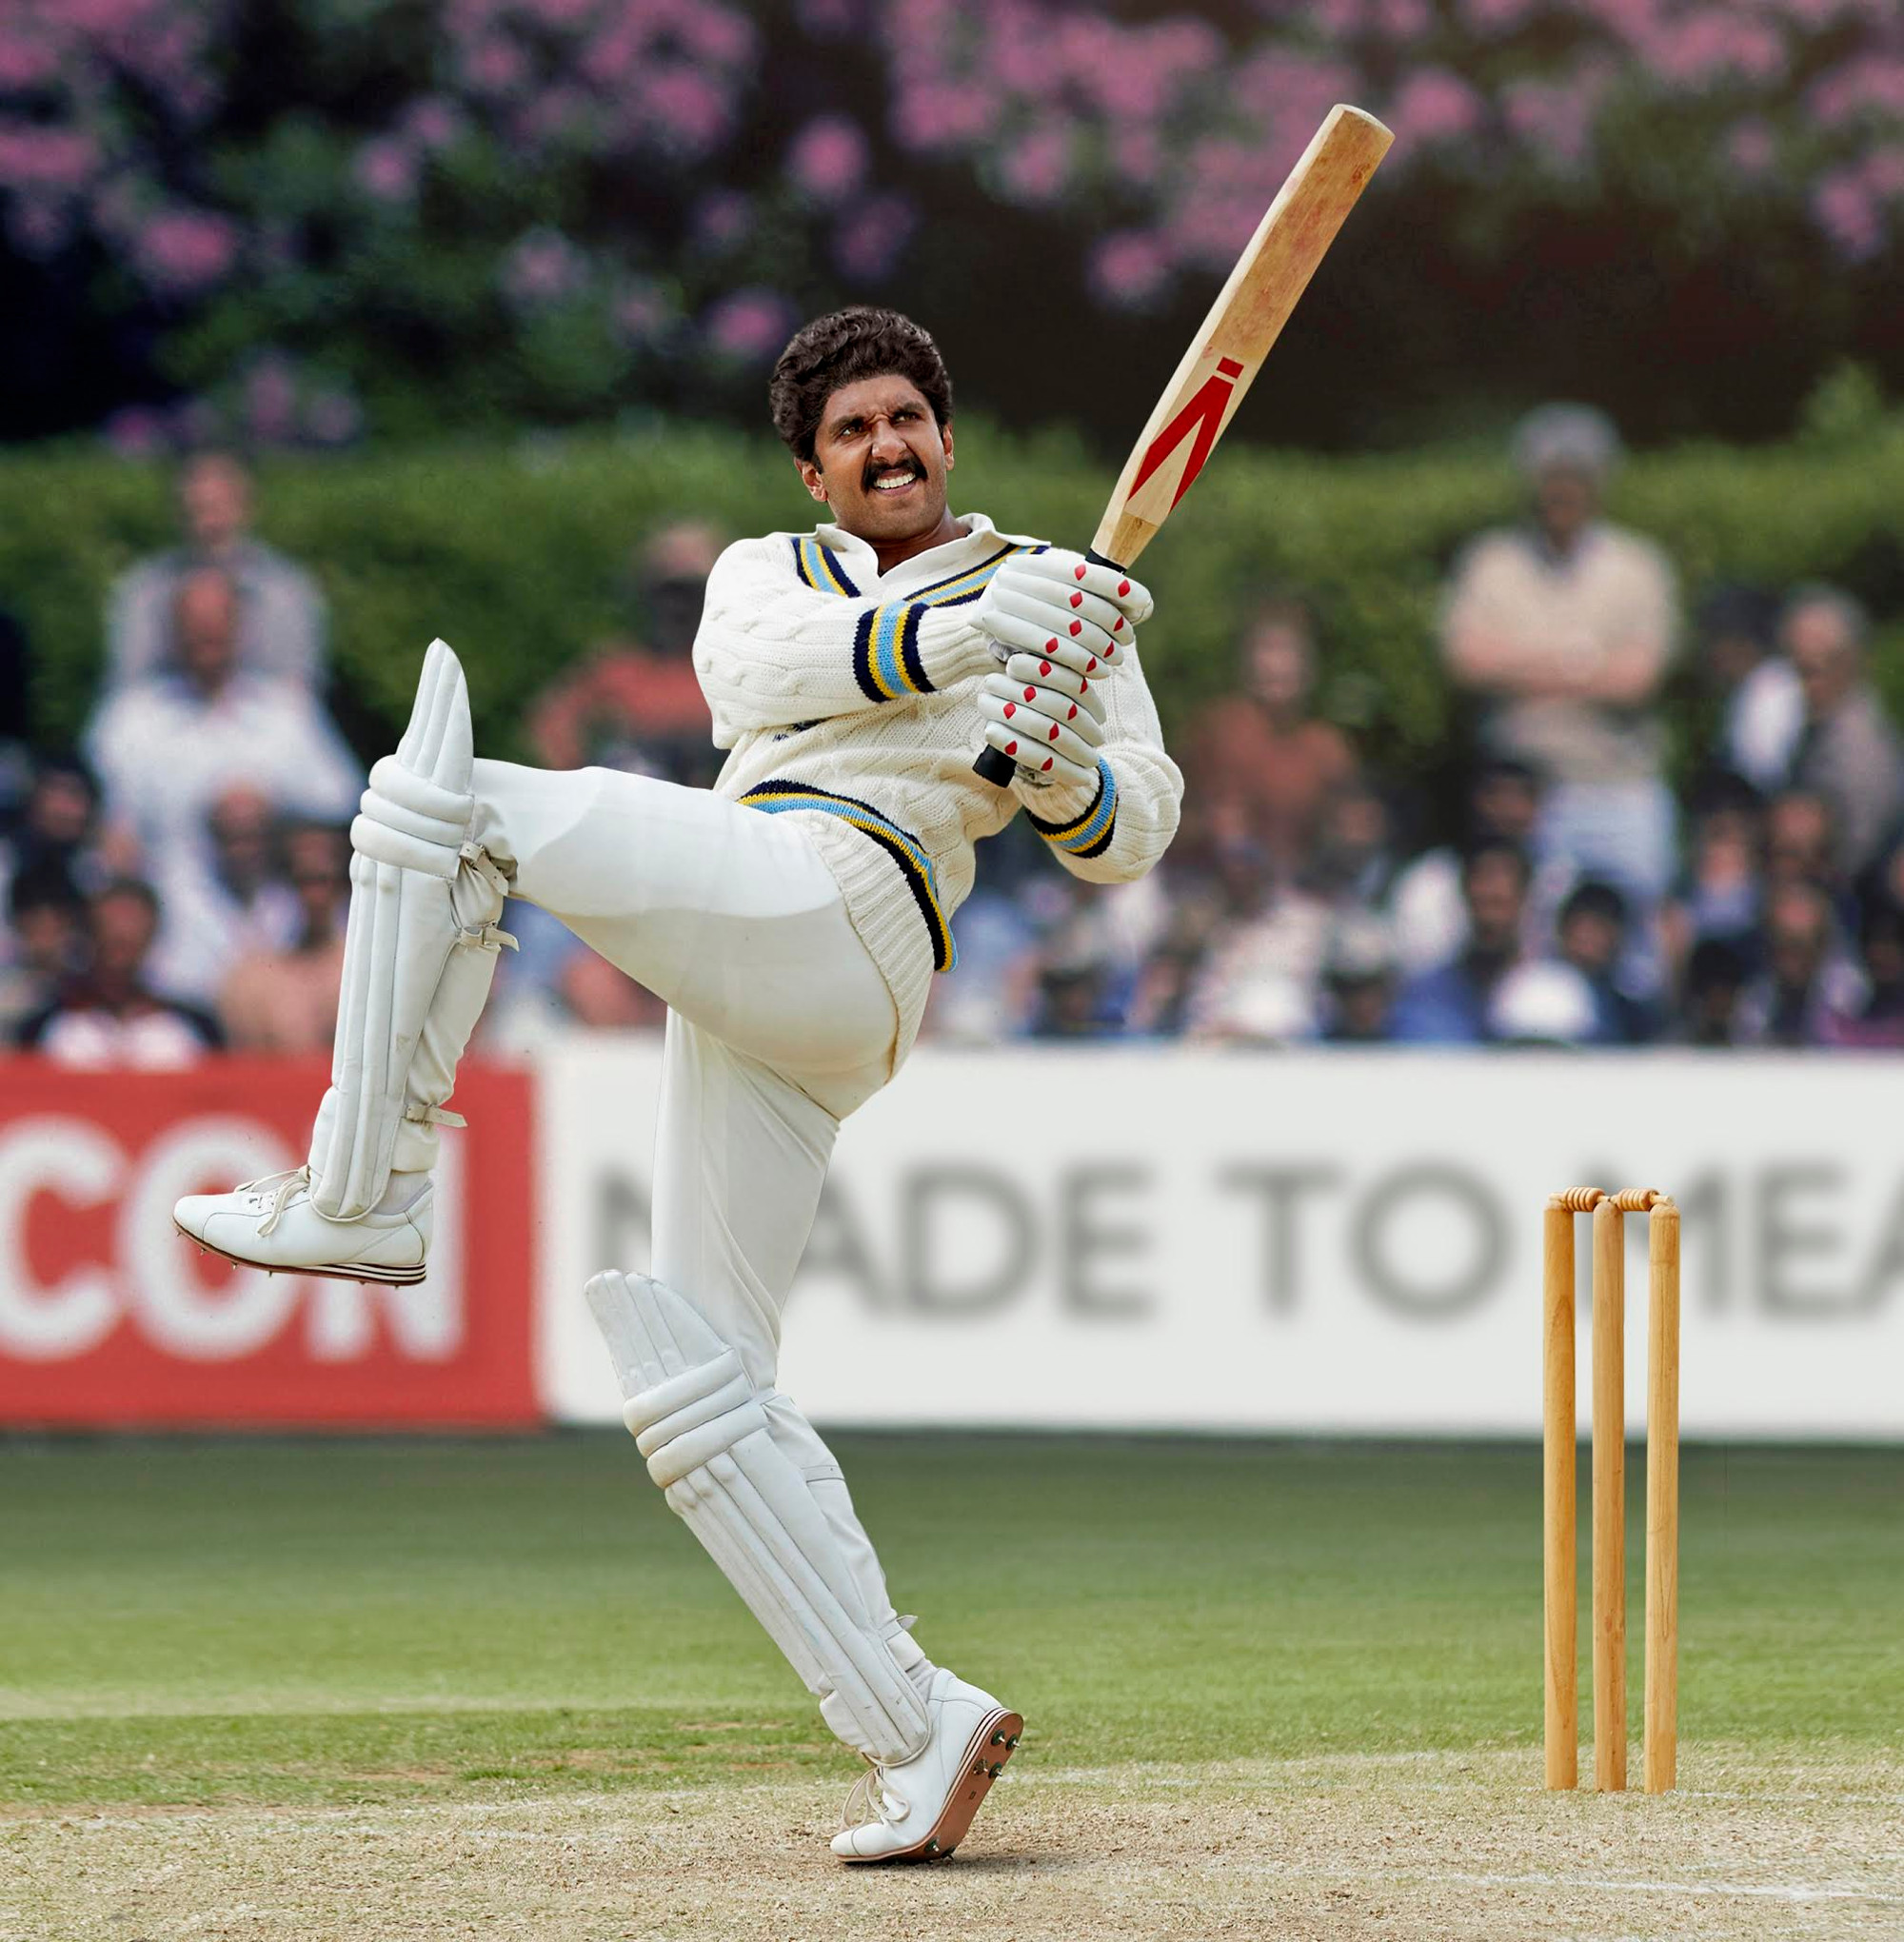 Ranveer Singh in the iconic Natraj pose, playing at the Tunbridge Wells ground where Kapil Dev scored 175 runs against Zimbabwe in the 1983 world cup semi-finals